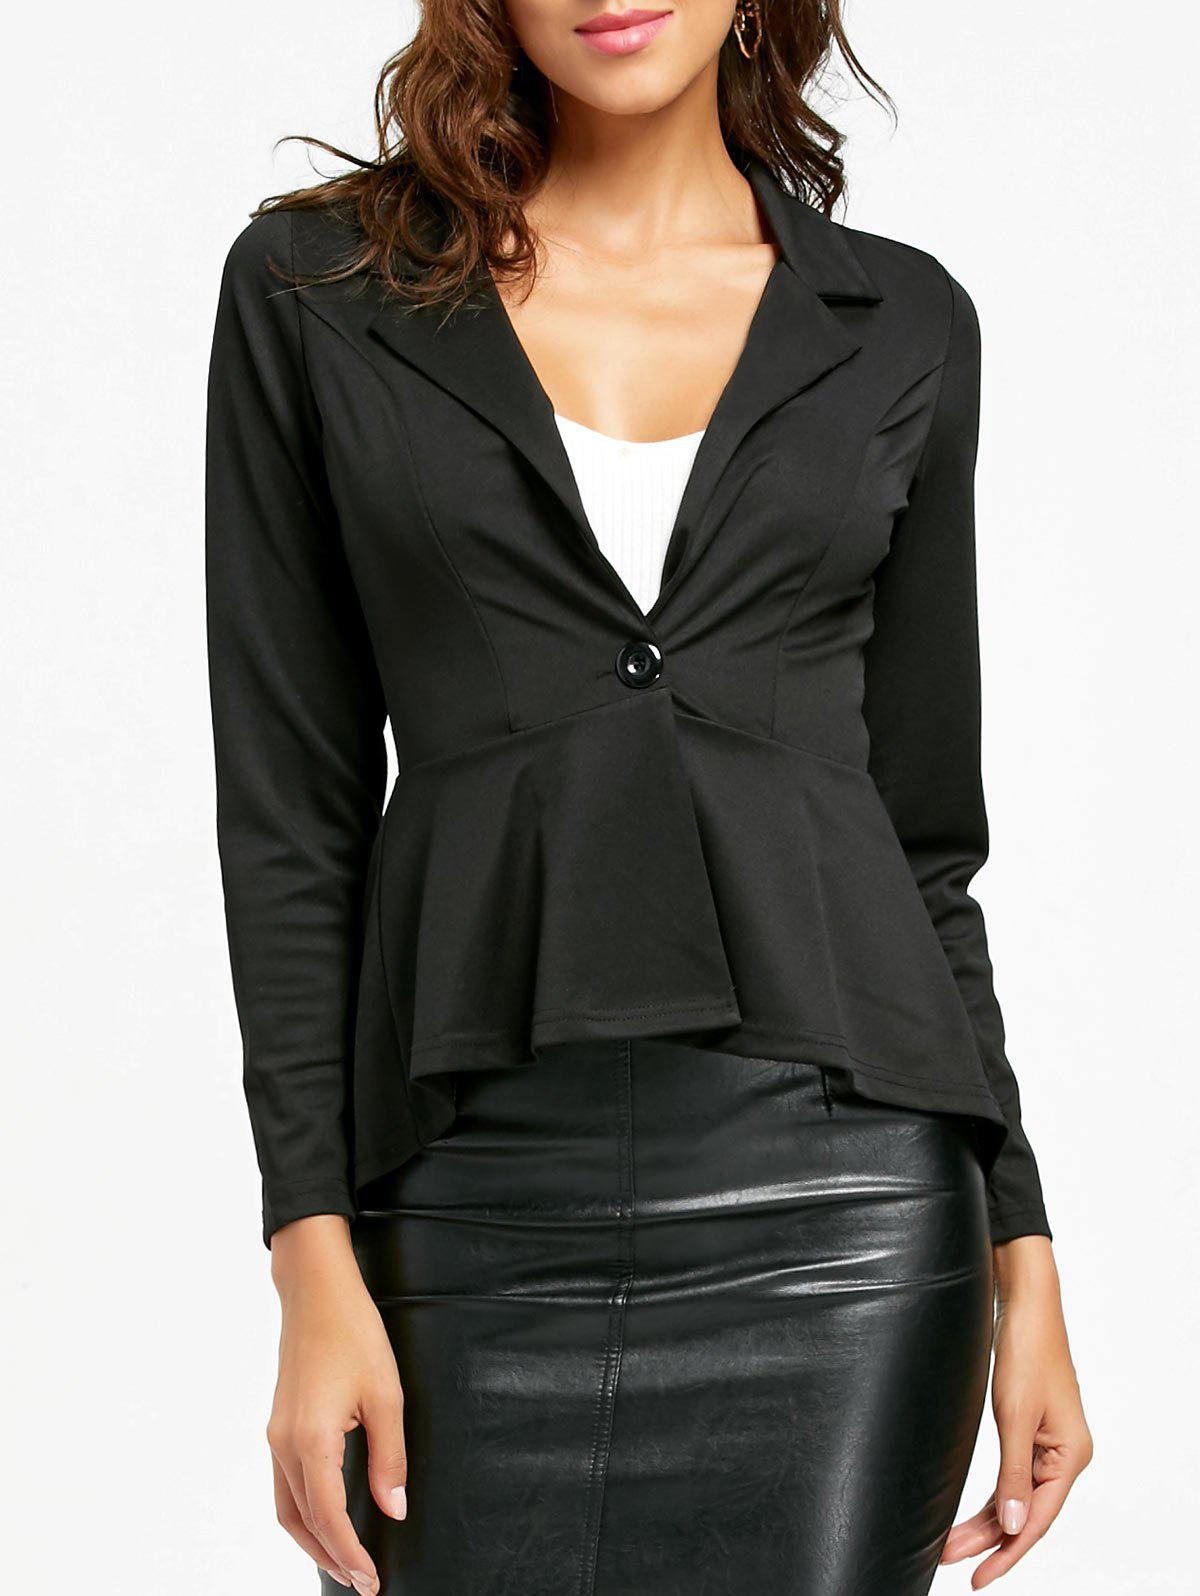 Flounce High Low One Button Blazer - BLACK L